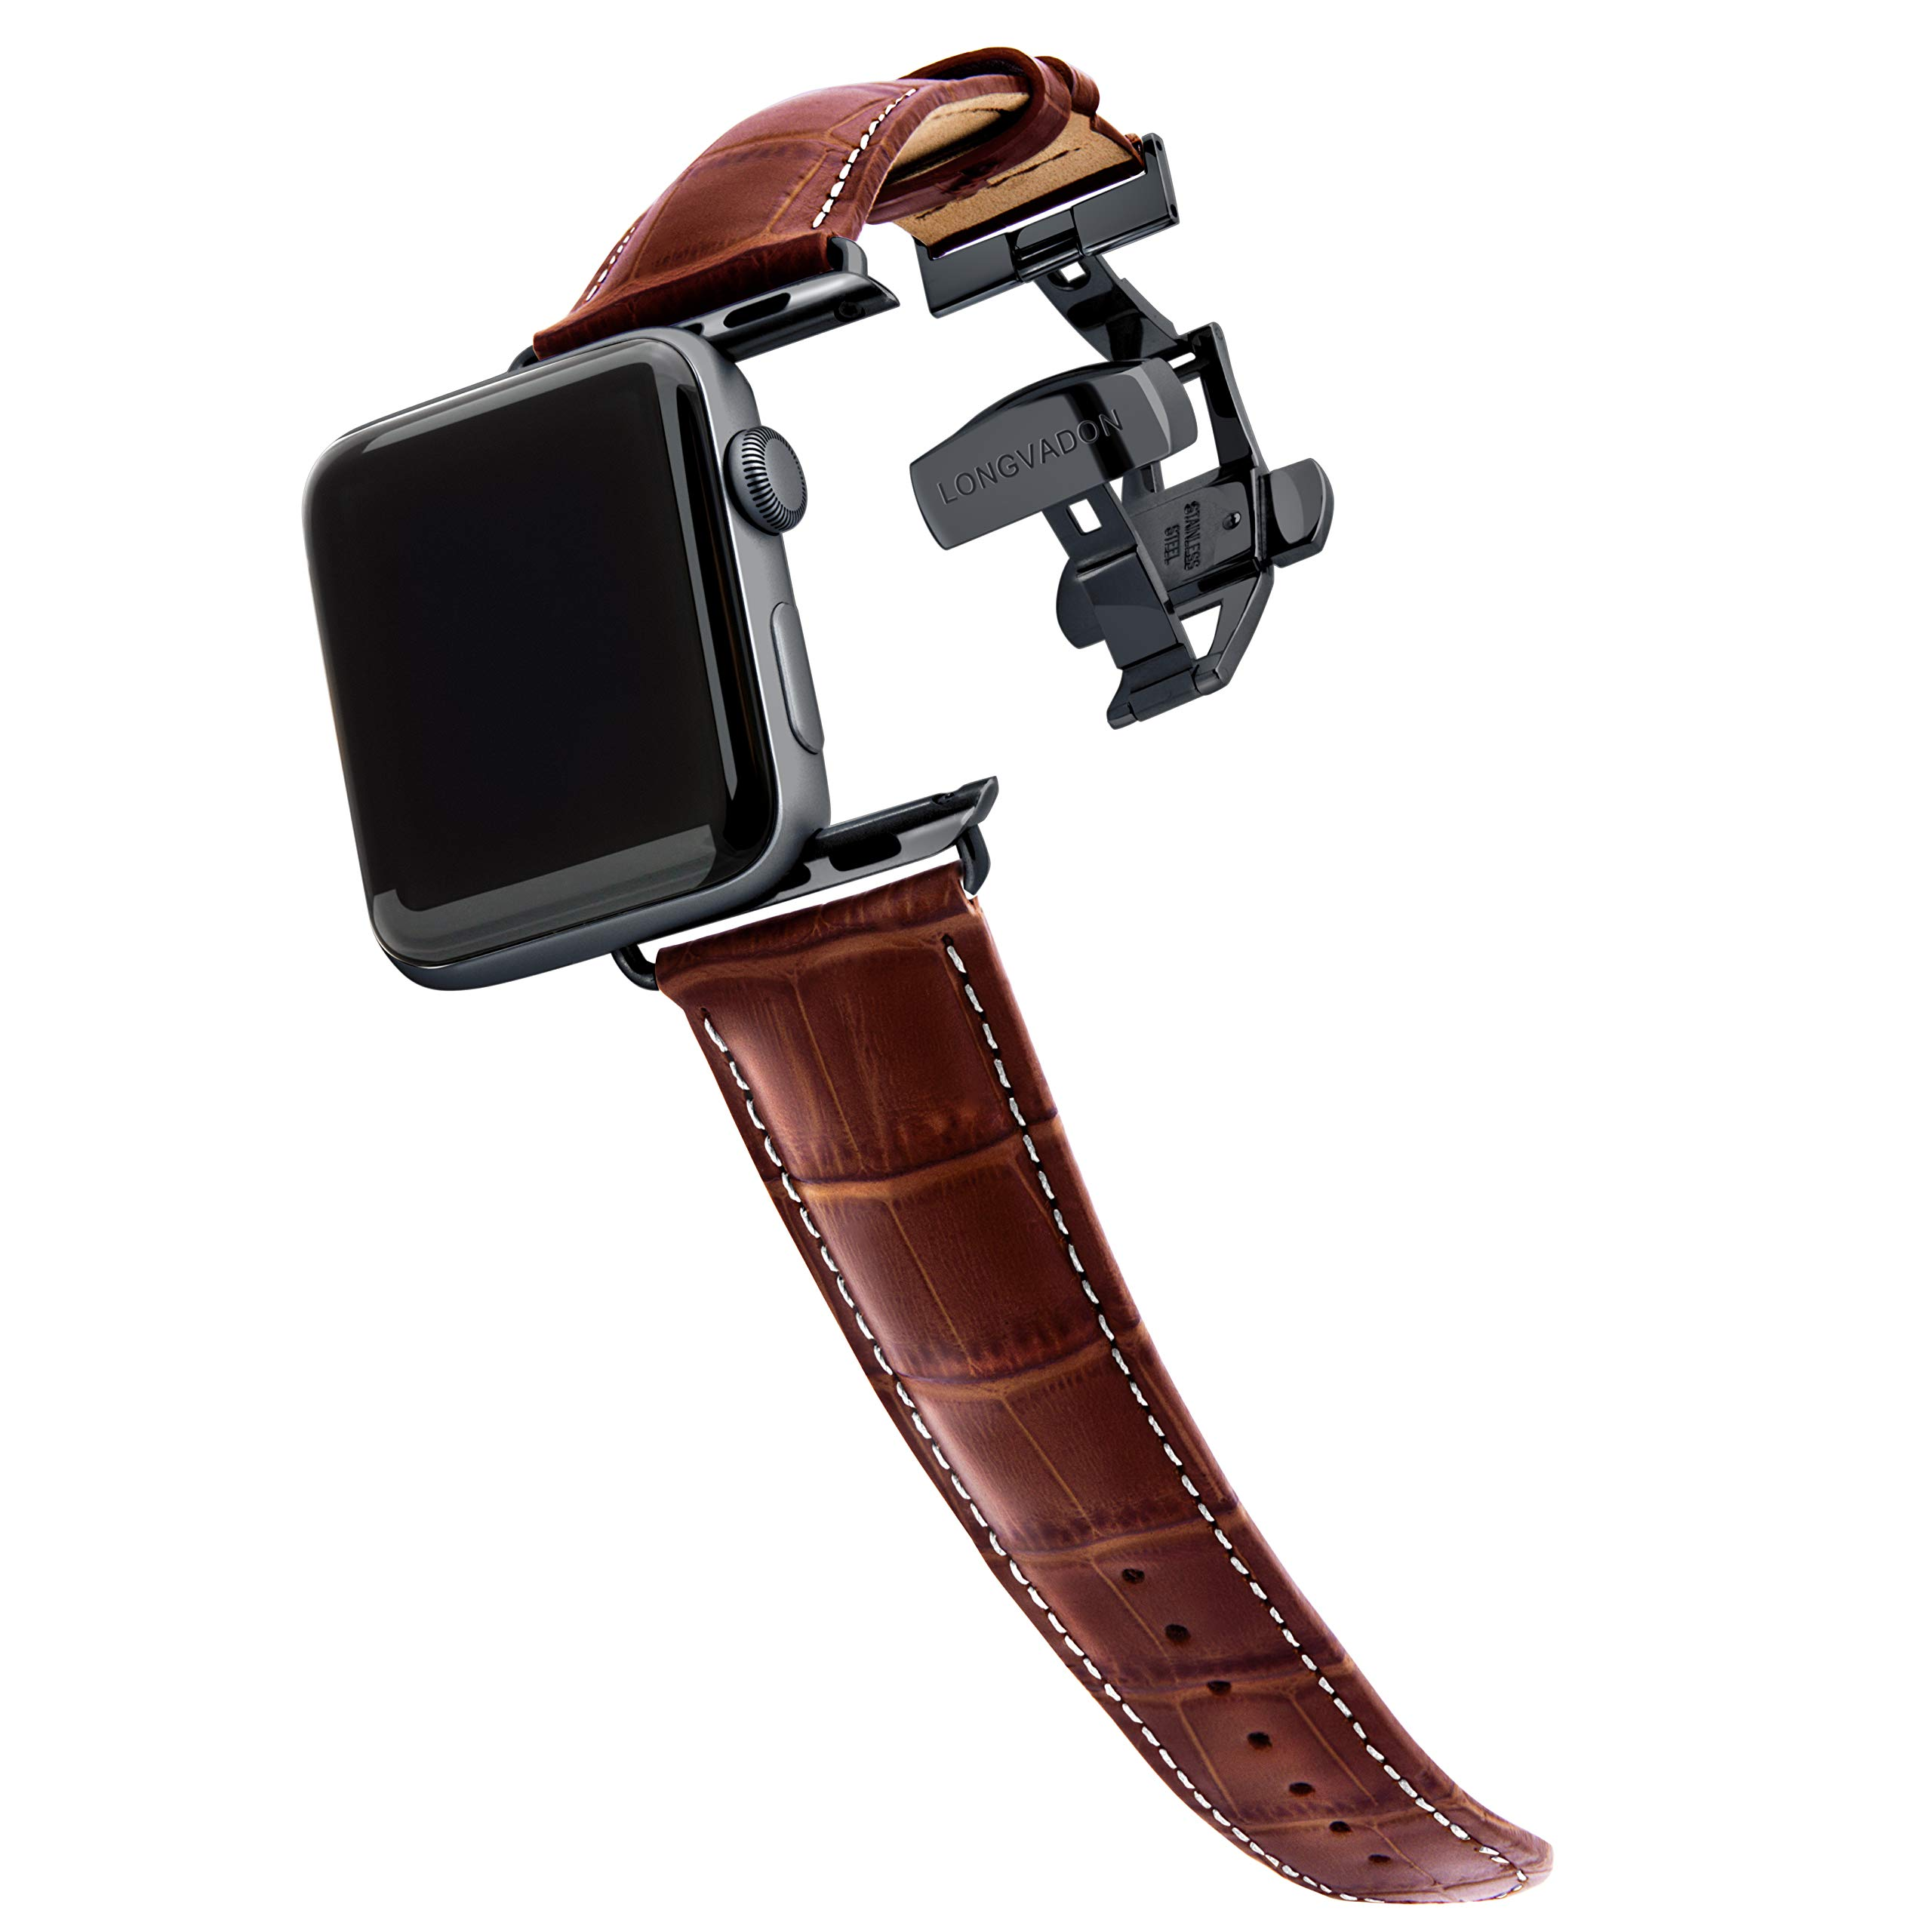 Longvadon Men's Watch Band - Compatible with Apple Watch Series 1, 2, 3 (42mm) & Series 4 (44mm) - Genuine Top Grain Leather - Caiman Series, Mahogany Brown & White Stitching with Black Details